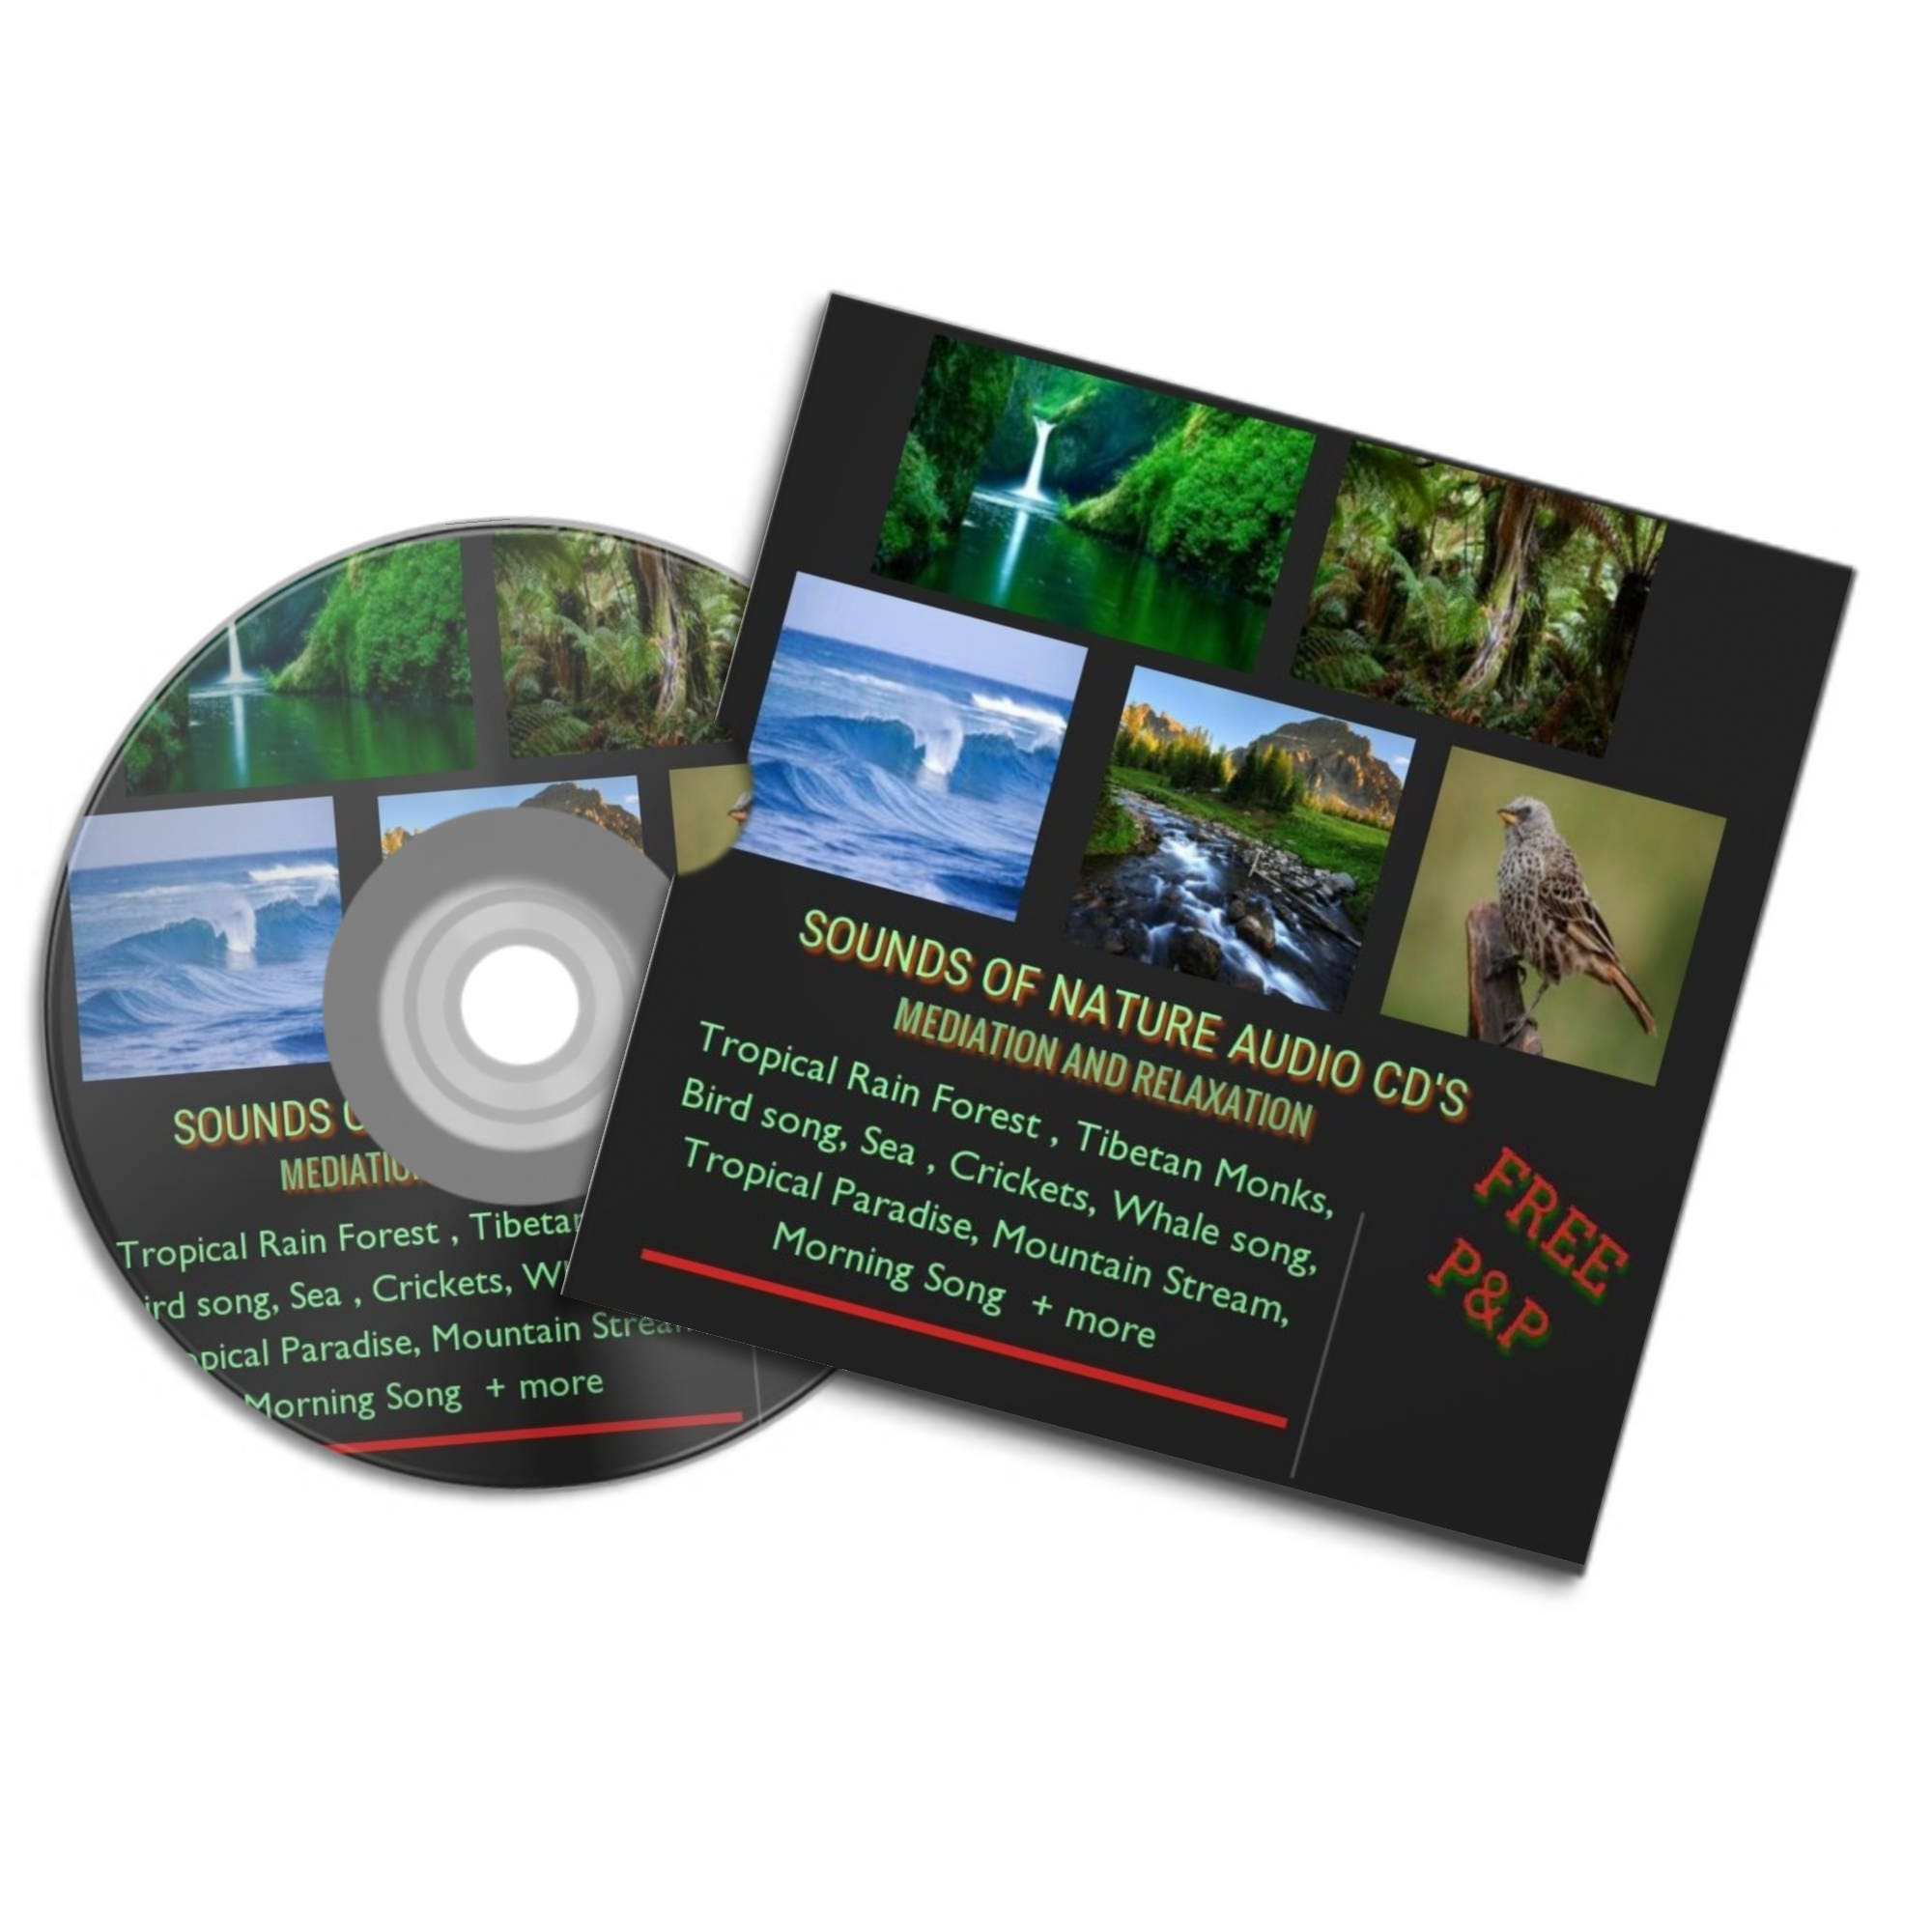 NATURE SOUNDS Meditation Relaxation Audio Cd's ocean waves